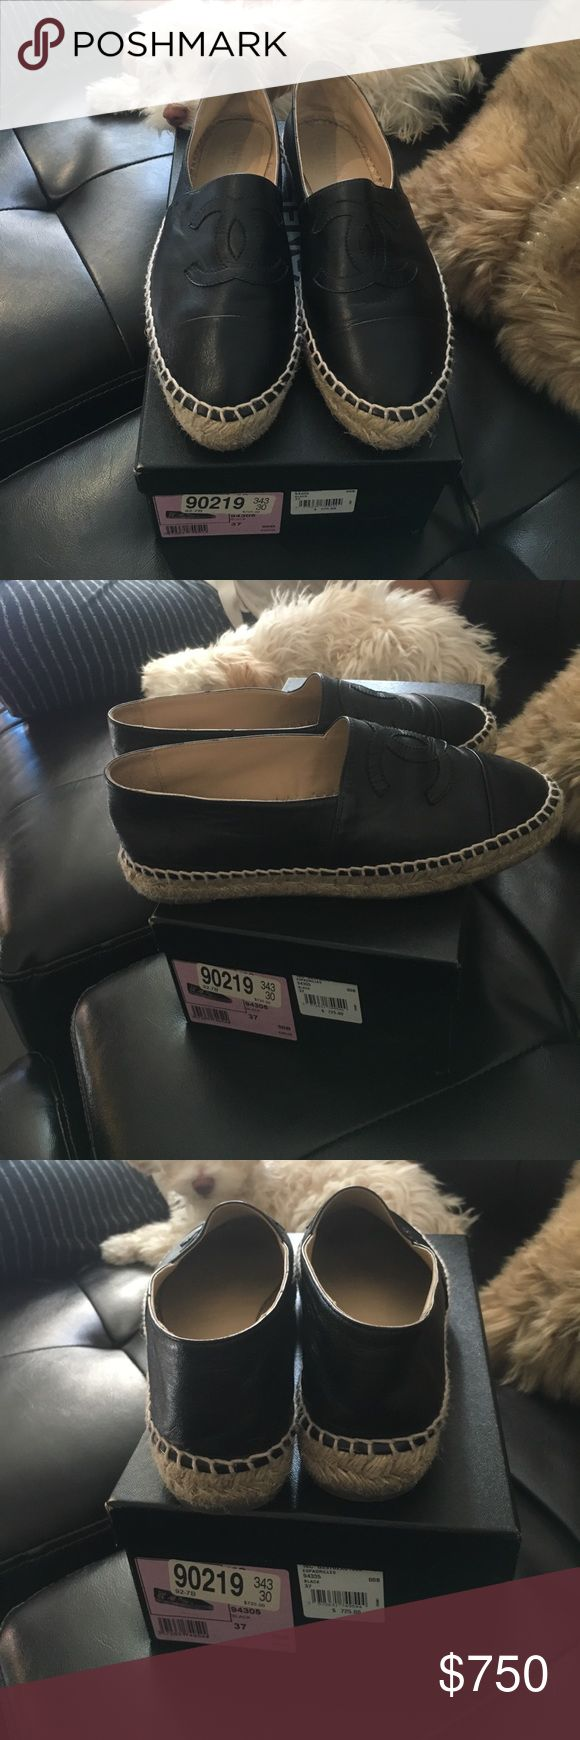 Chanel black leather flats Black leather Chanel  espadrilles. Size 37. Worn 3 times is amazing condition like brand new! This version of the shoes is the double sole. These espadrilles are sold out nationwide. Bought at Neman Marcus Beverly Hills. Very rare and hard to get your hands one. Retails for over $850. Includes box and dustbag. 100% authentic CHANEL Shoes Espadrilles